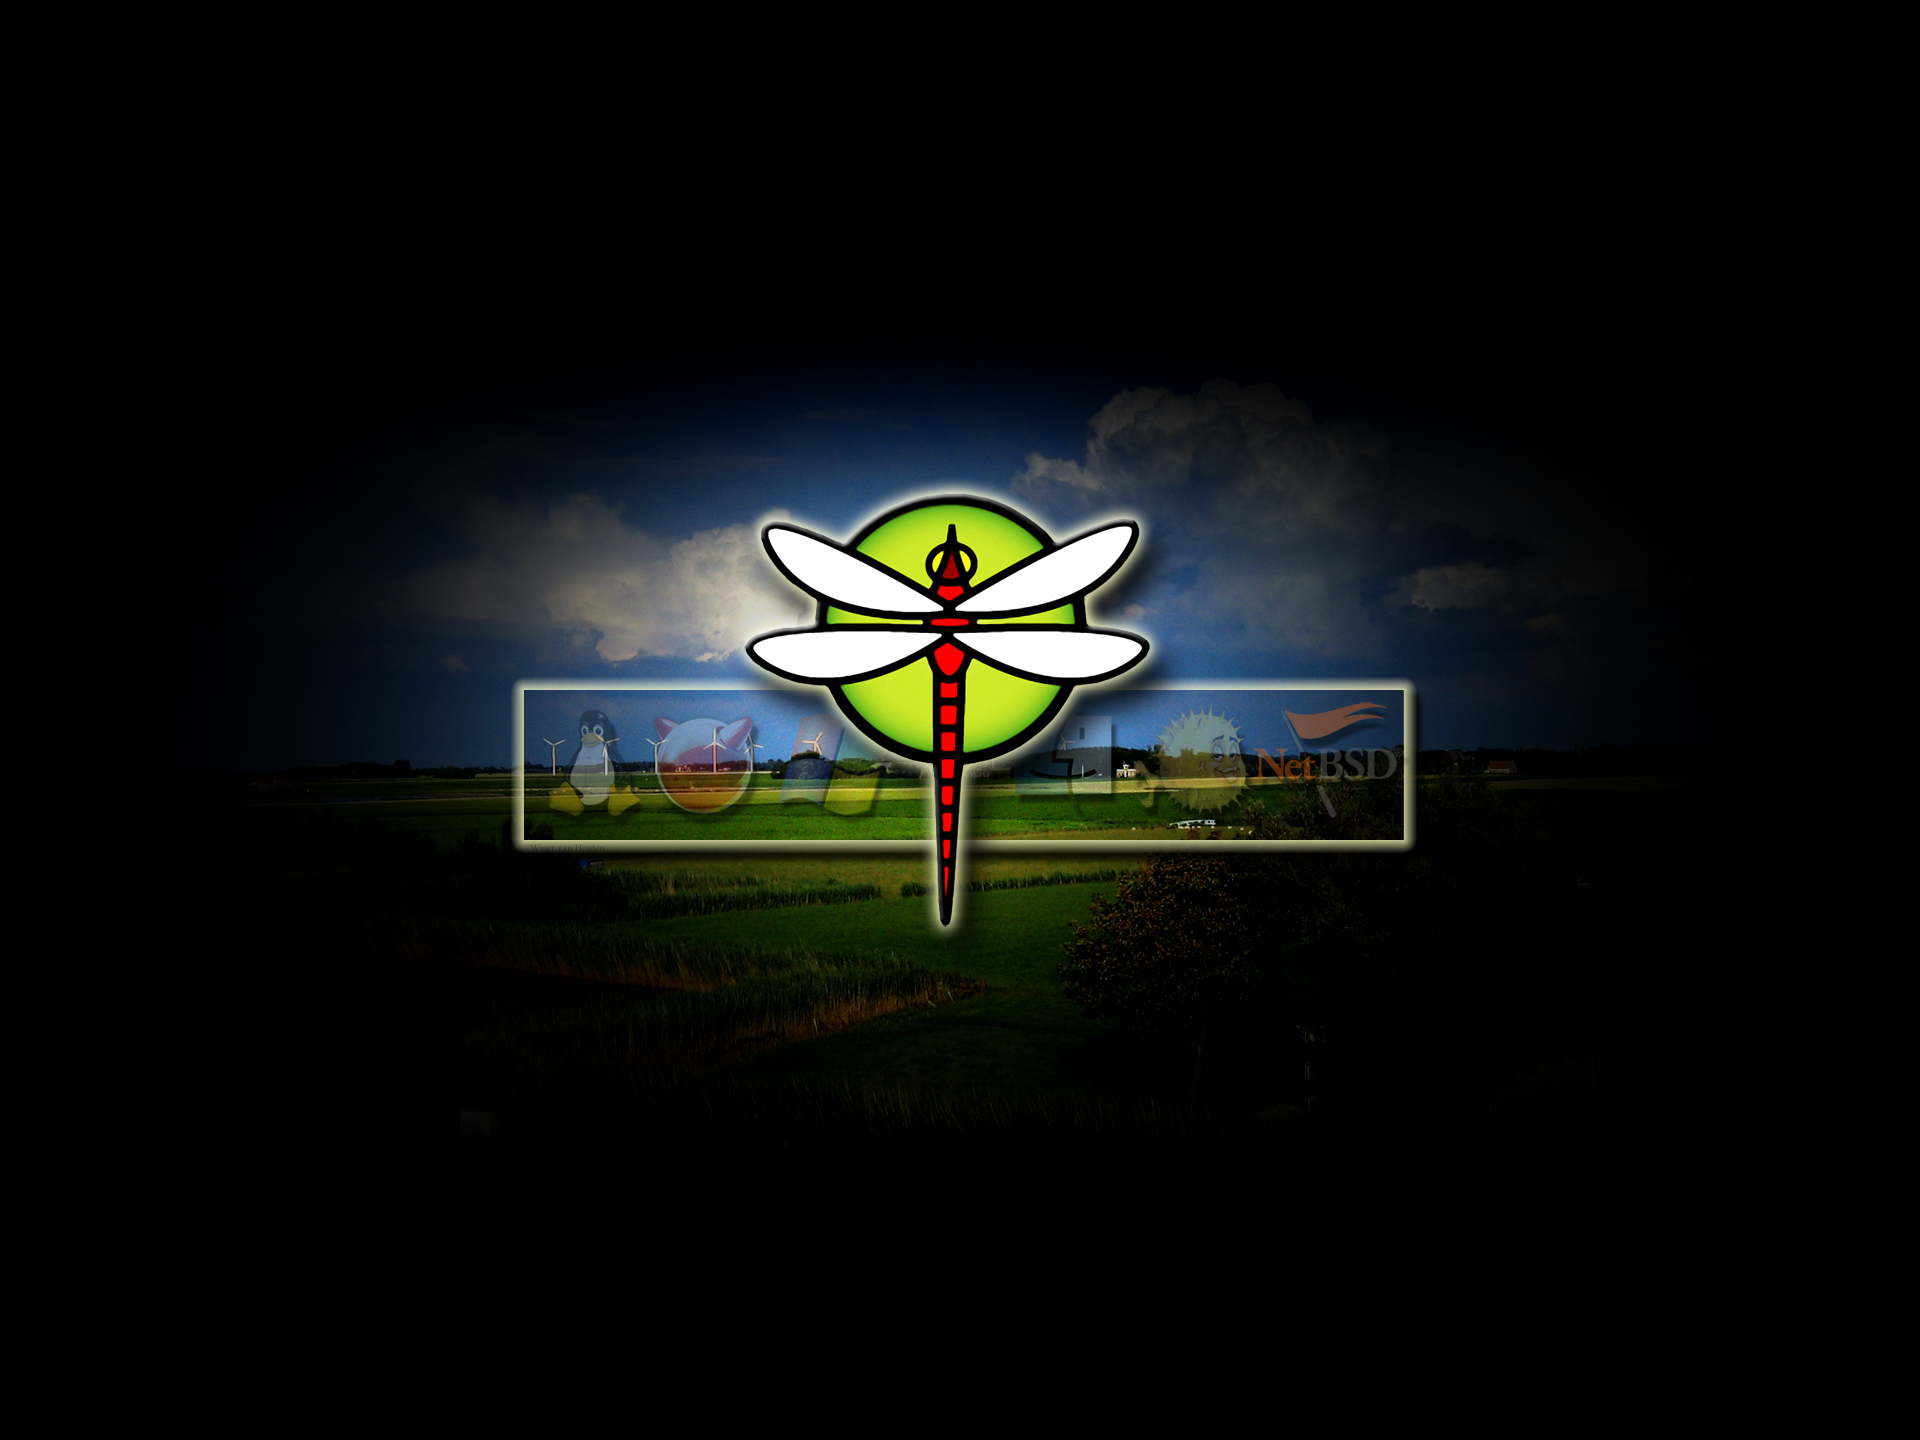 More DragonFly wallpapers Surrender Submit 1920x1440